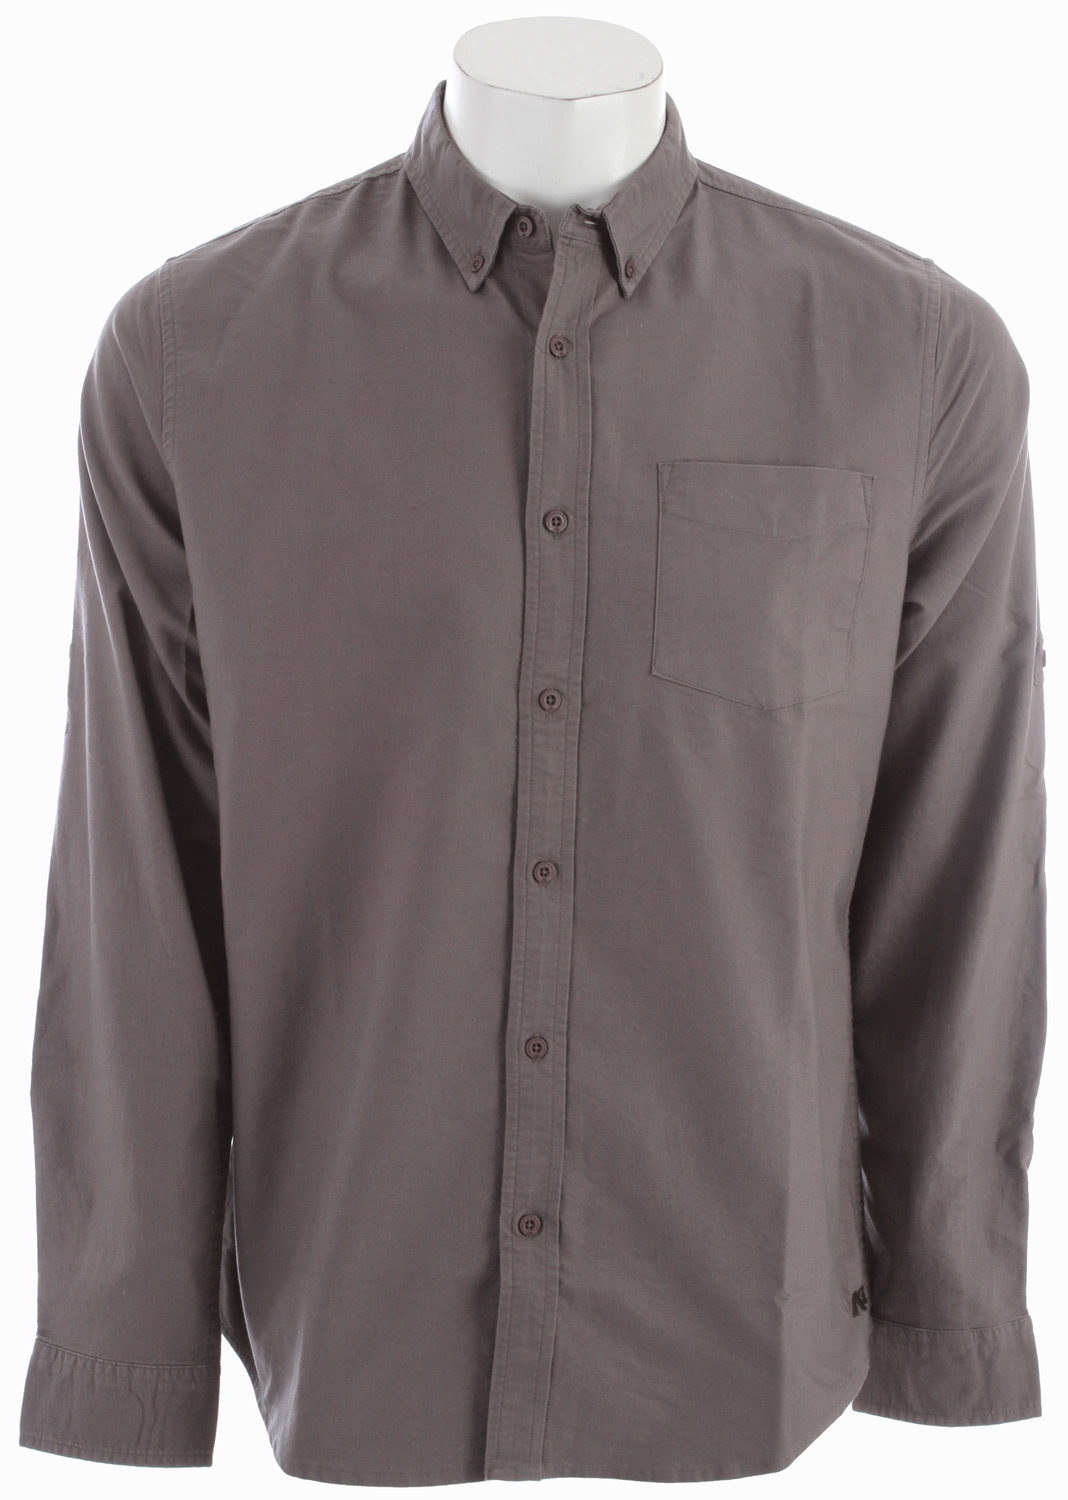 Key Features of the Analog Kenton Shirt: Slim fit button up shirt with roll up straps at sleeves 100% cotton mini oxford with softener wash - $38.95